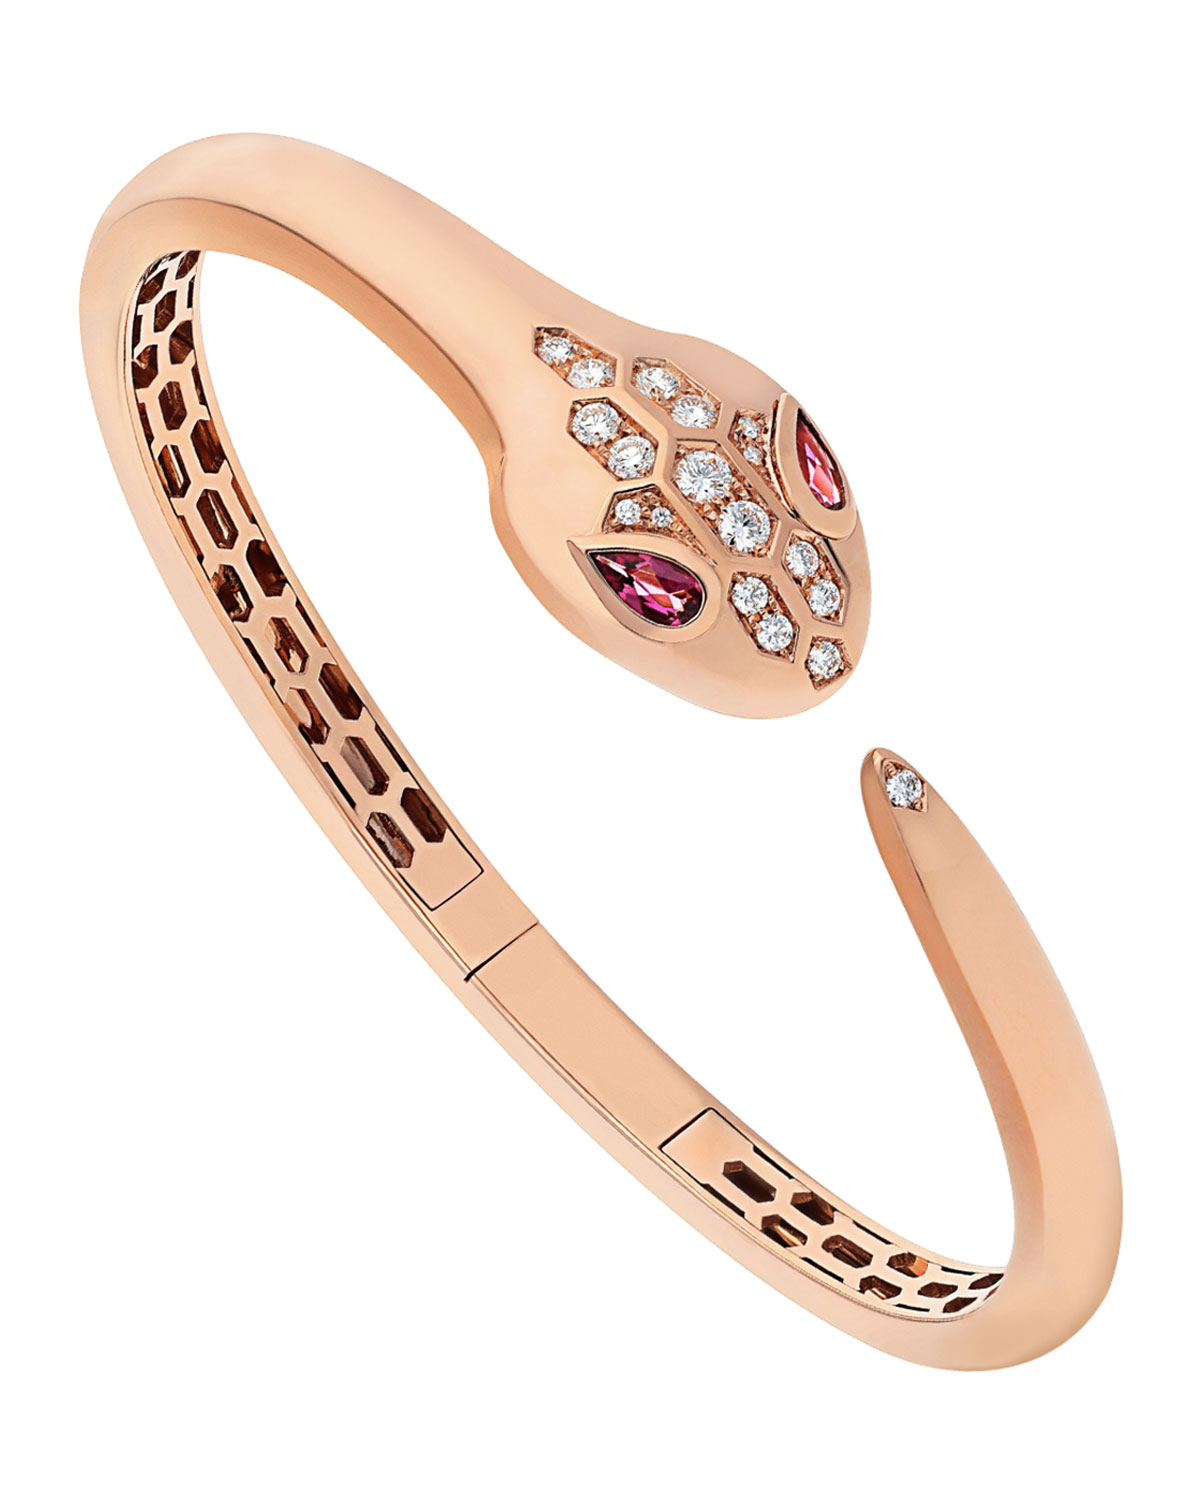 Serpenti 18k Rose Gold Bracelet with Rubellite and Diamonds